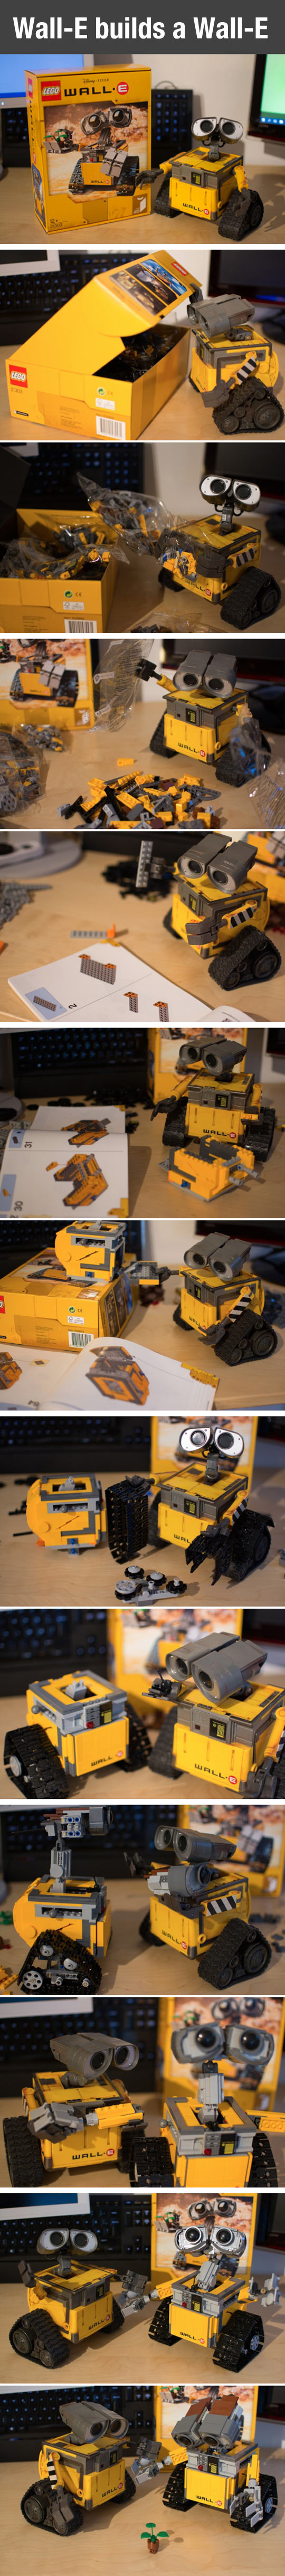 When A Wall-E Builds A Wall-E